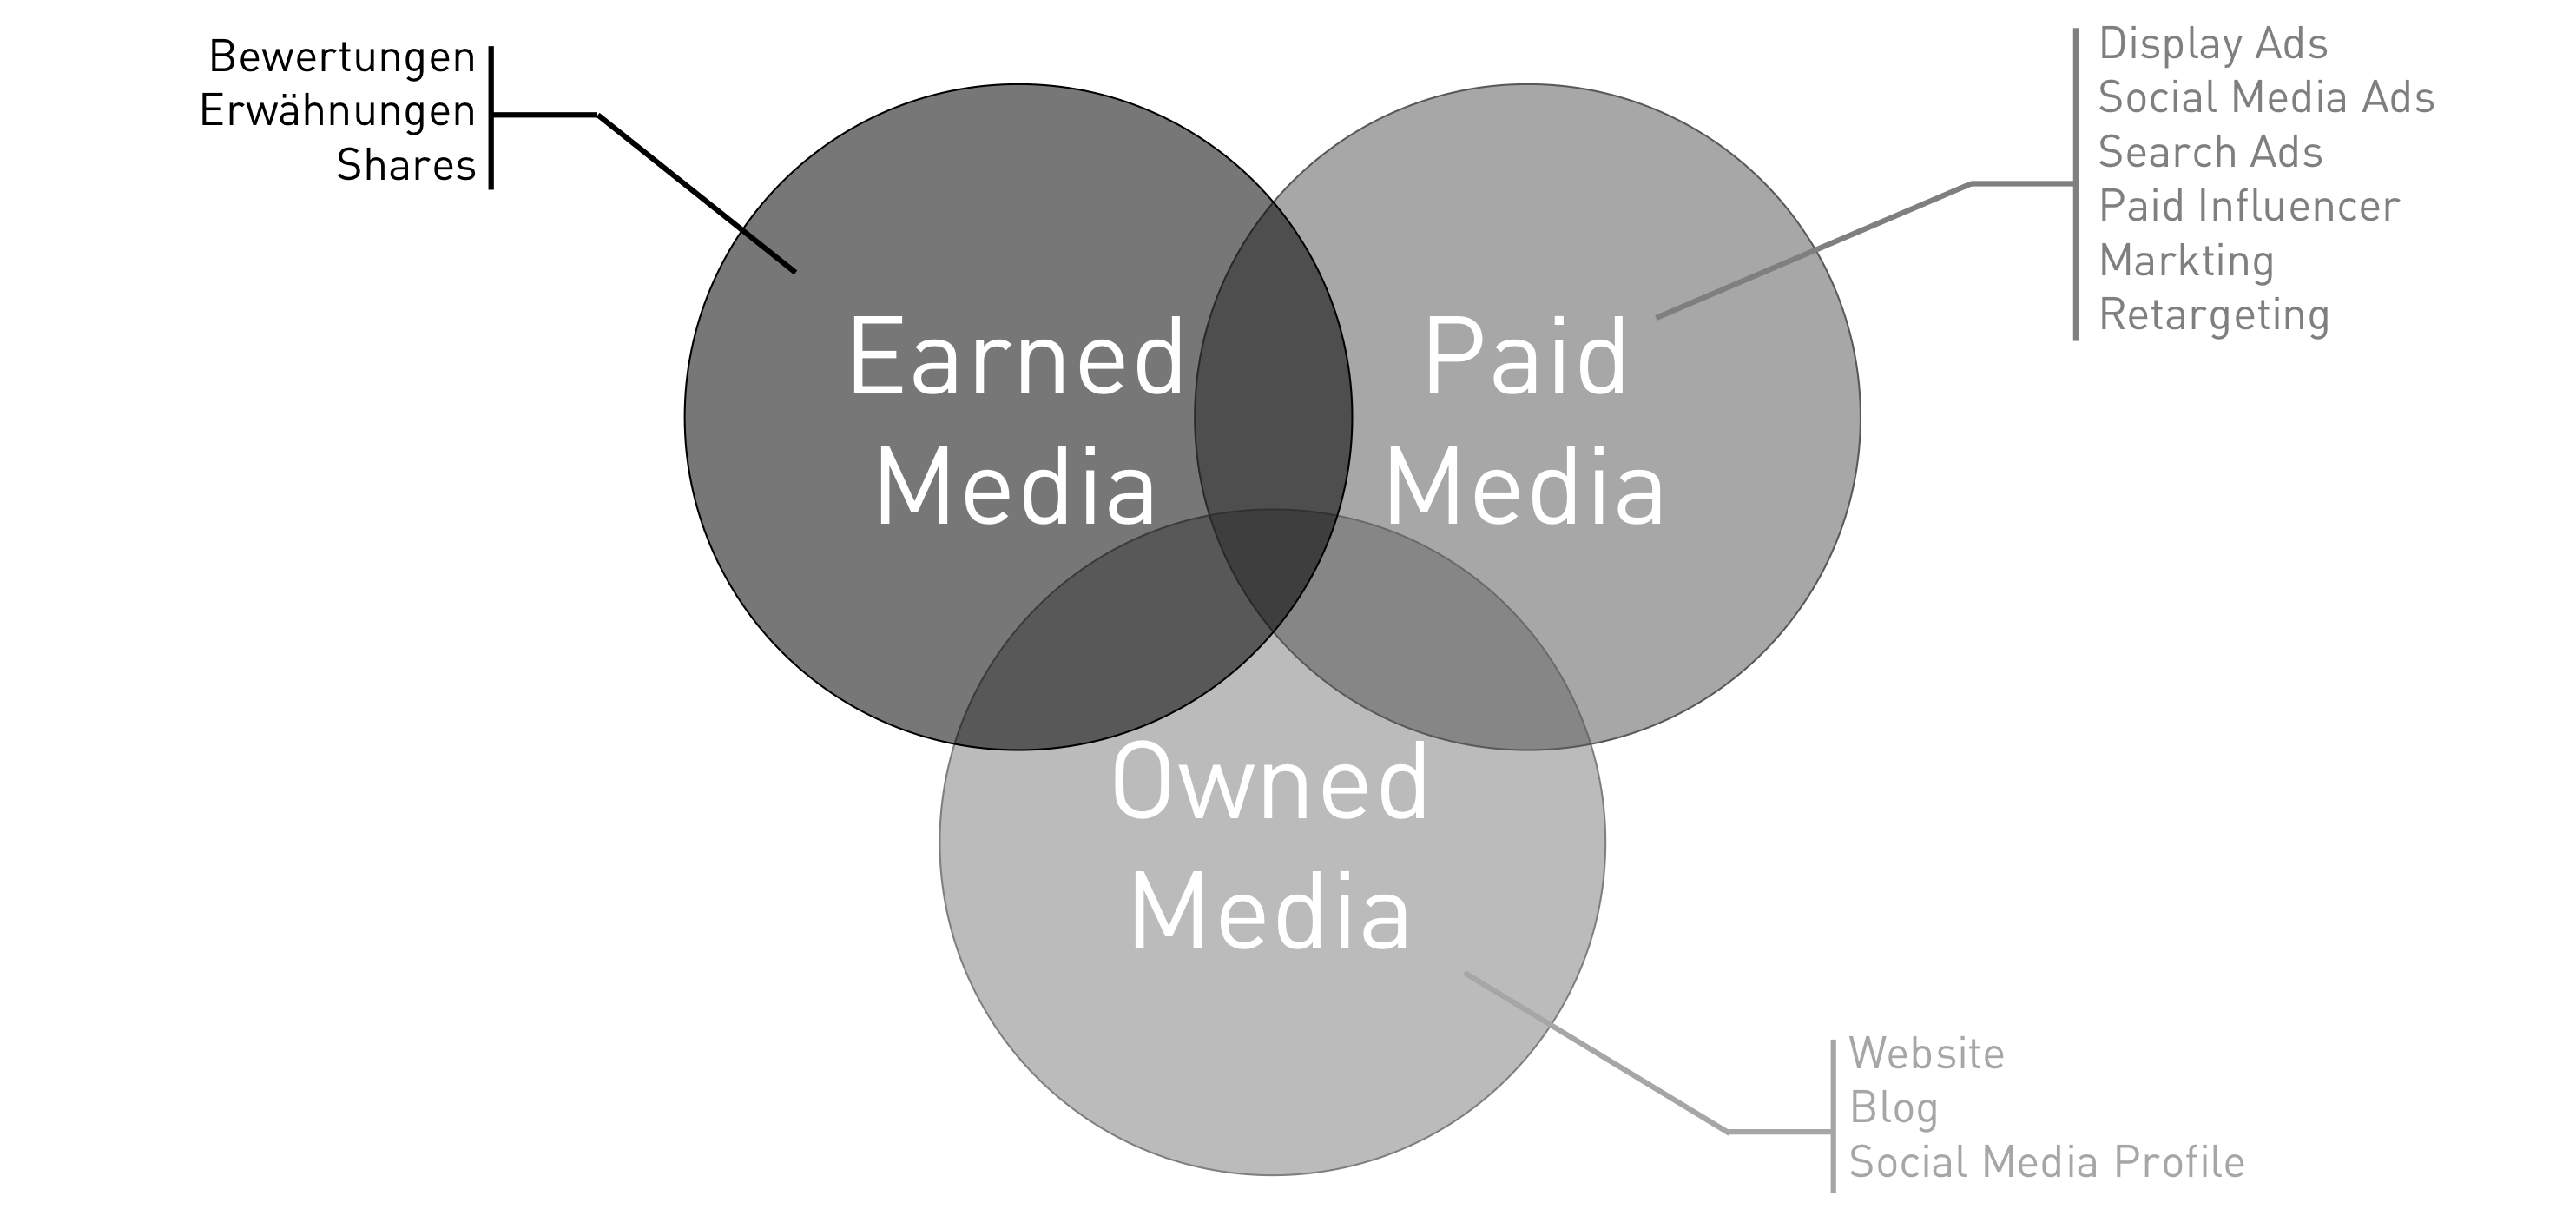 earned-owned-paid